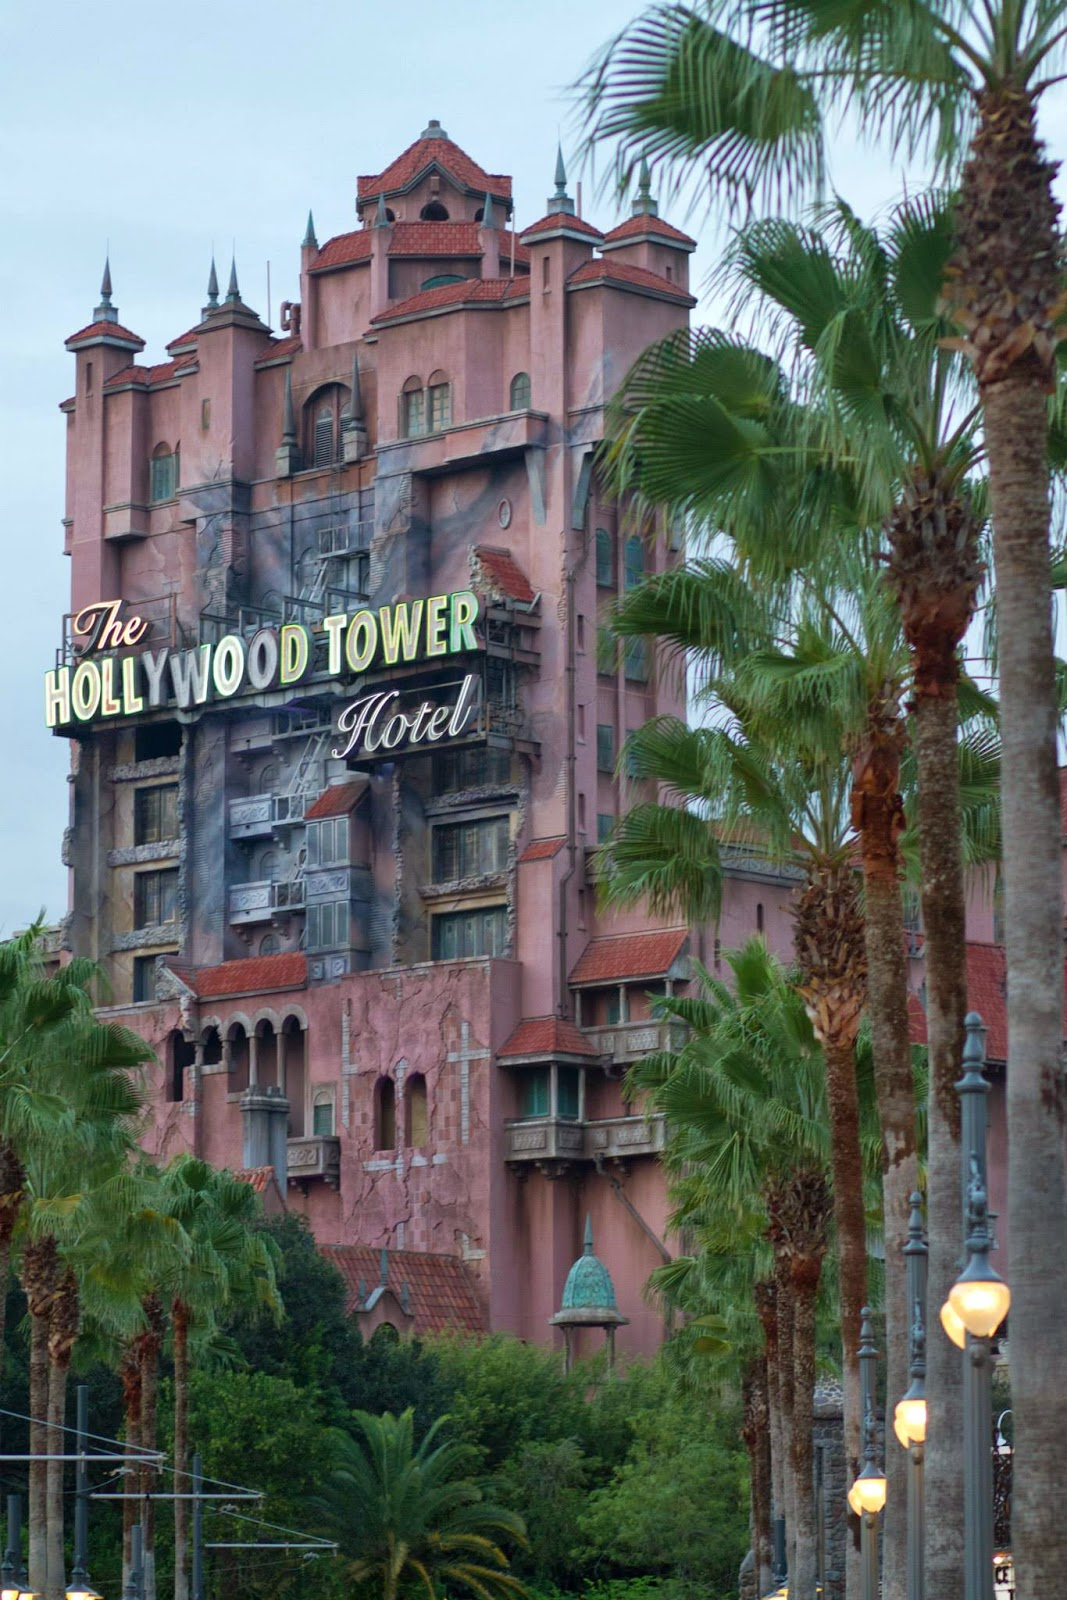 Hollywood Tower of Terror ride at Hollywood Studios